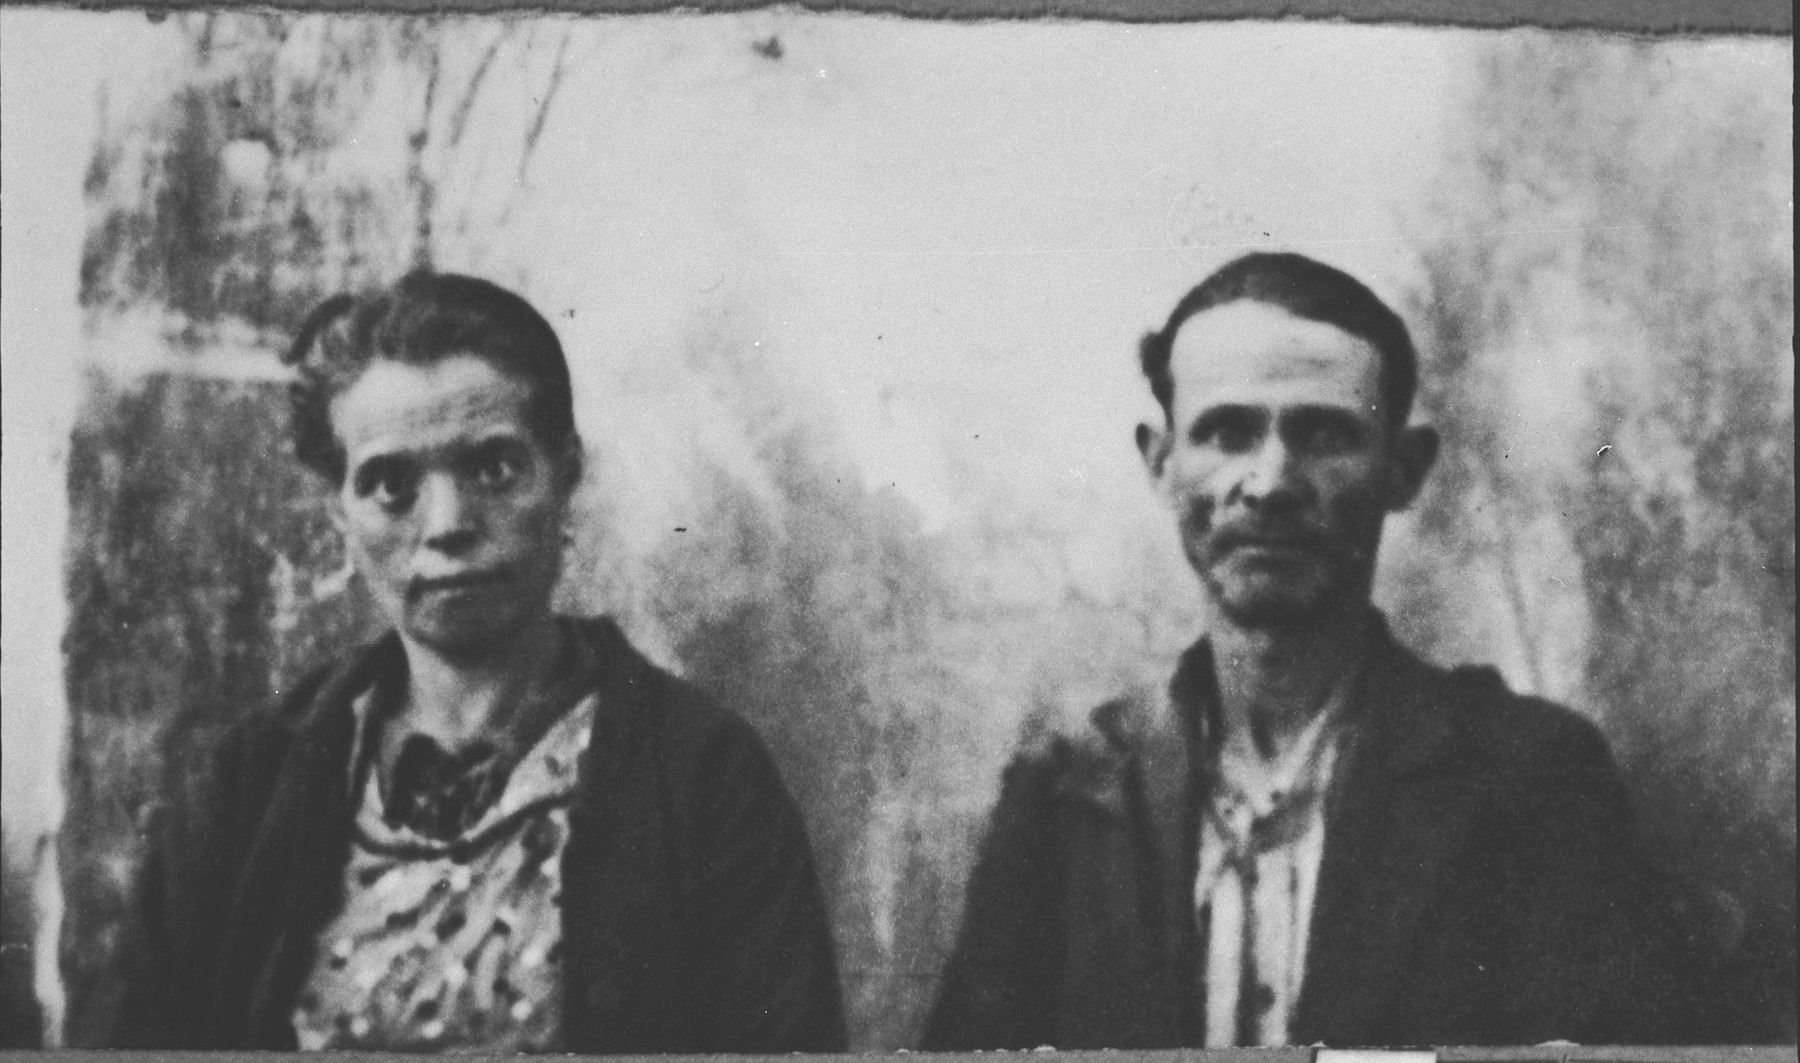 Portrait of unidentified man and woman.